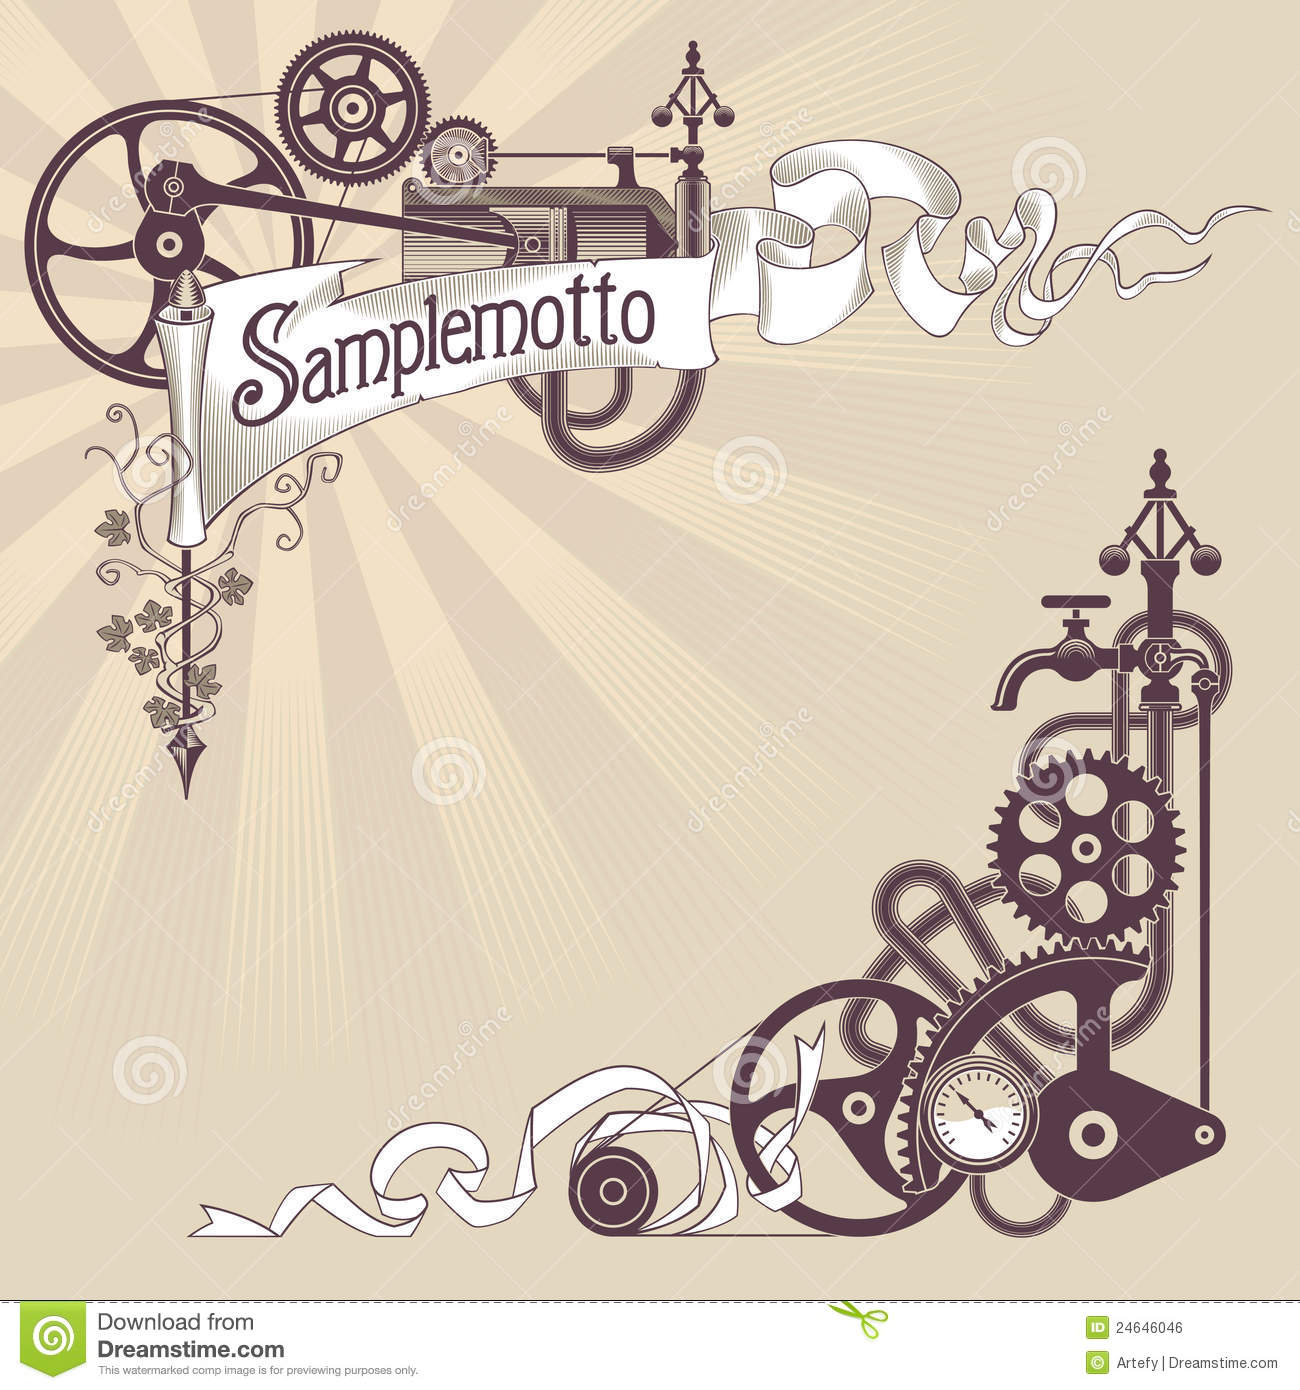 Steampunk banner design